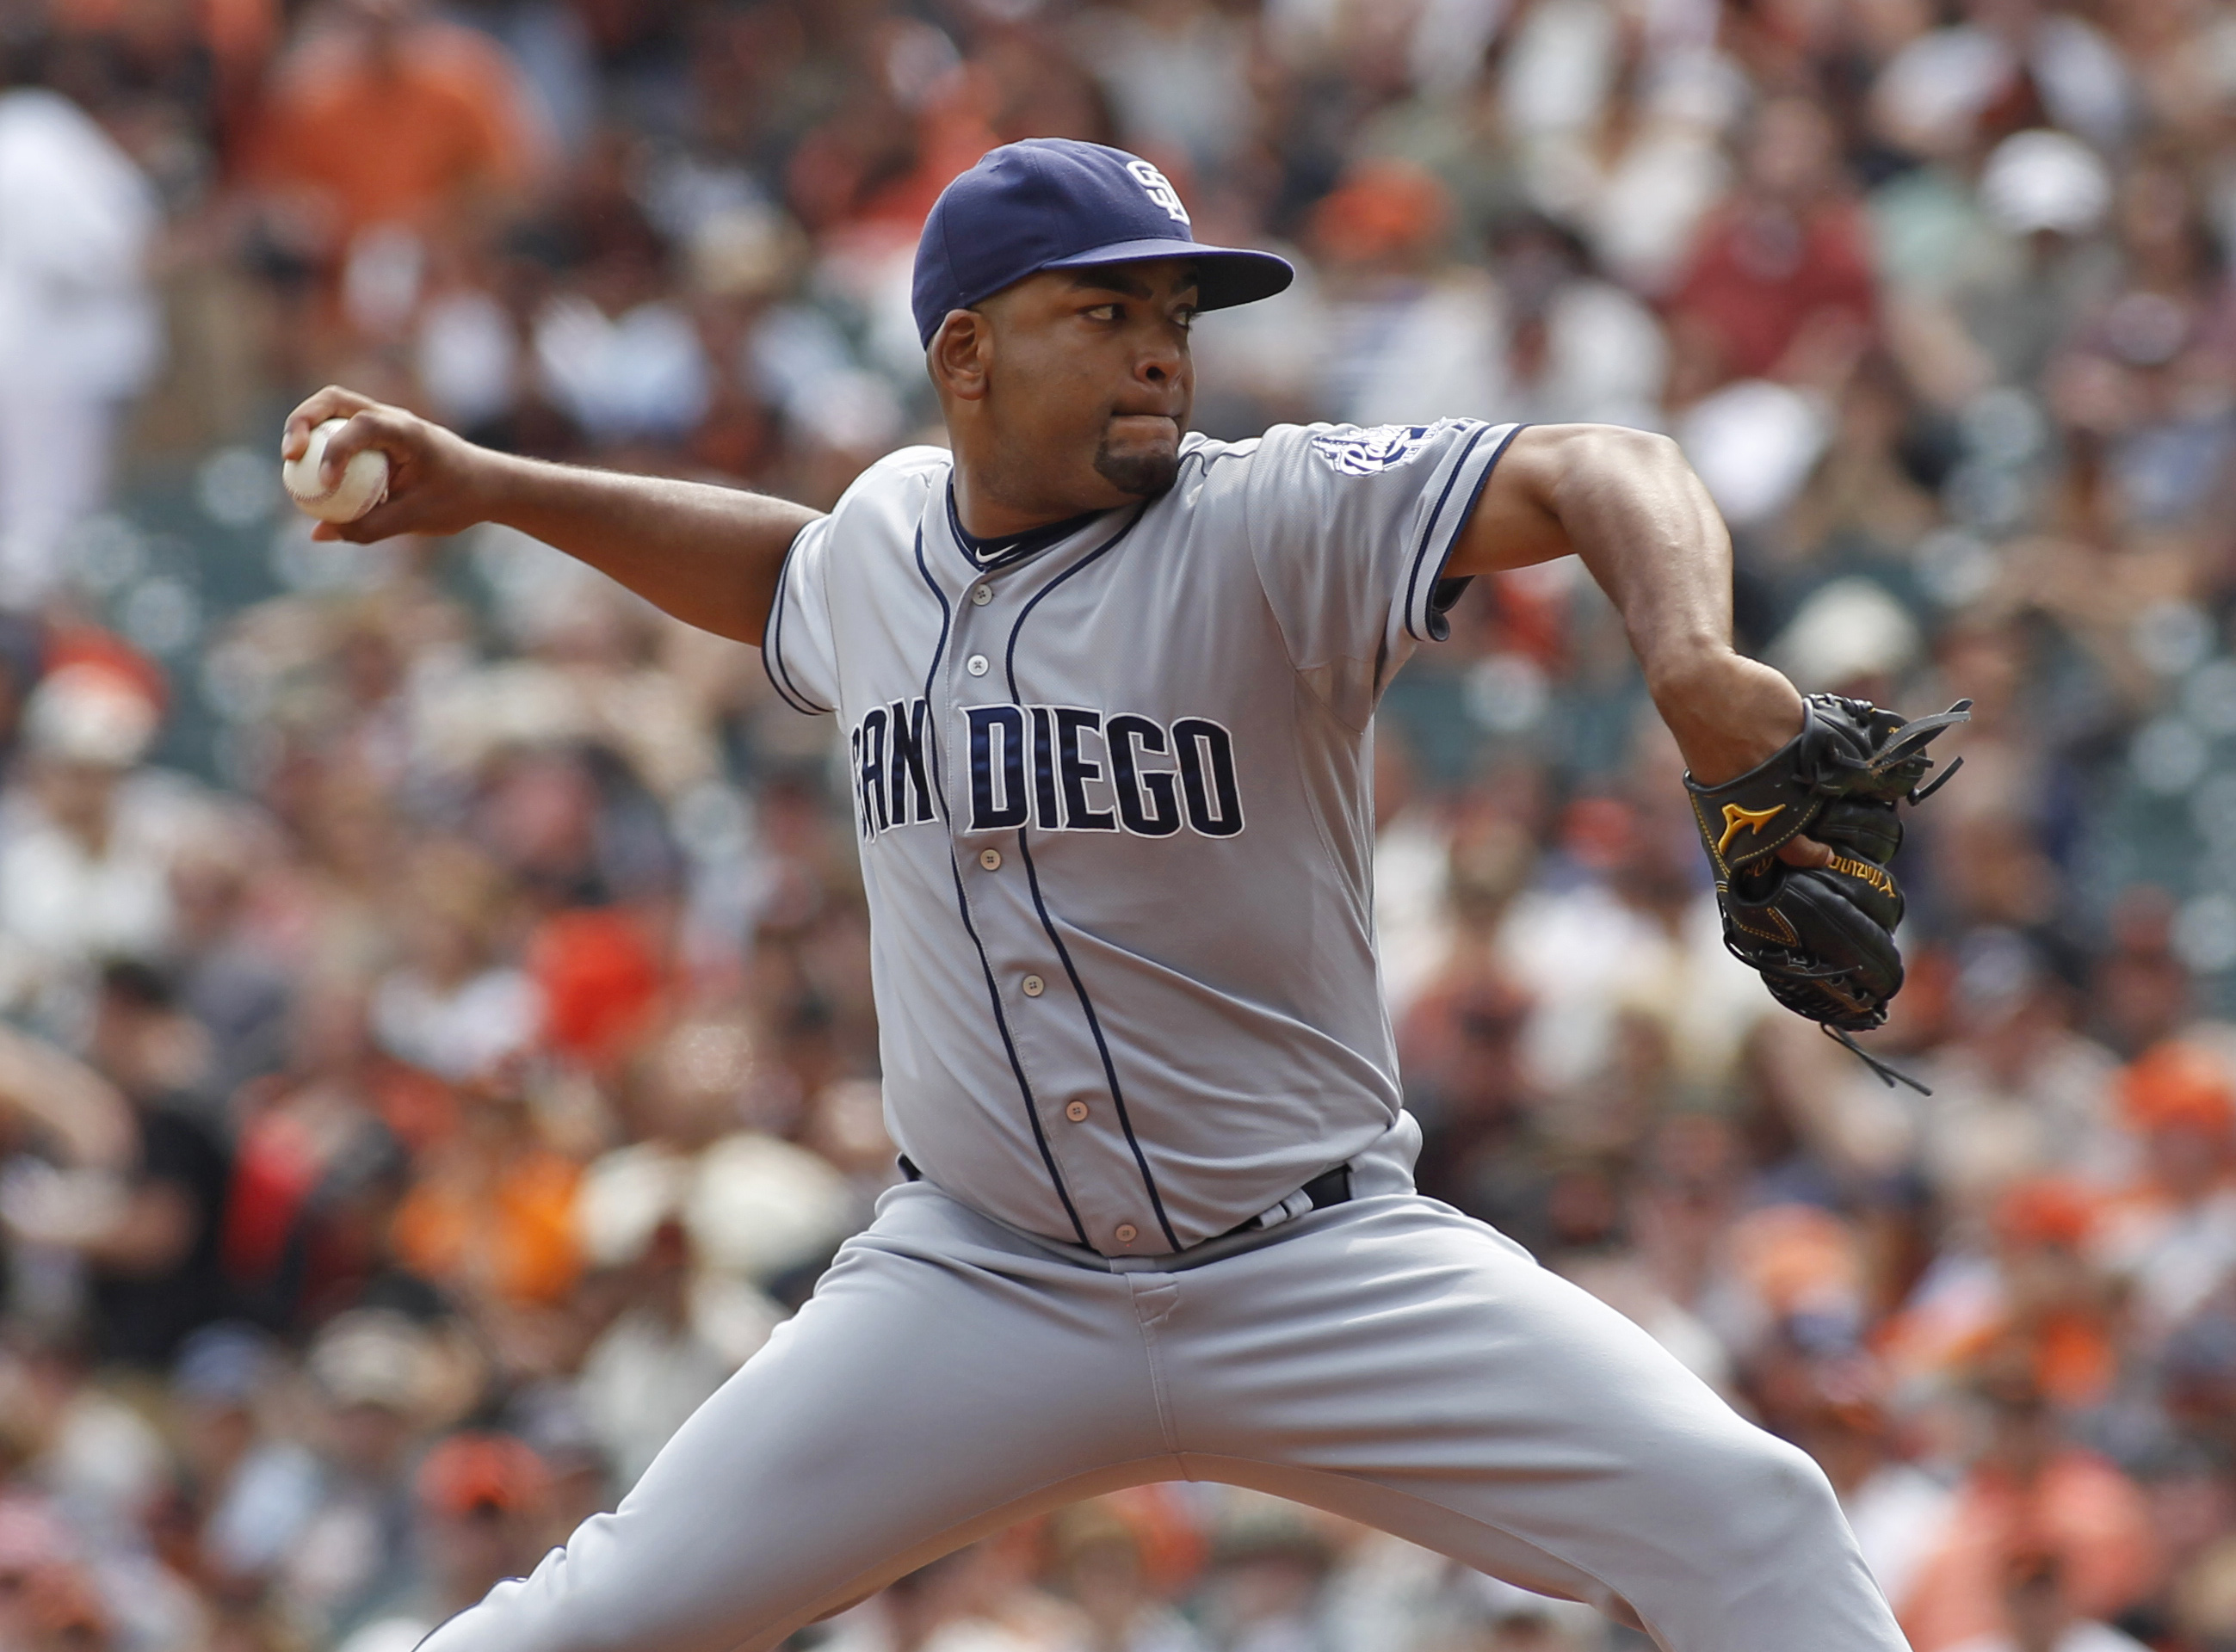 San Diego Padres pitcher Odrisamer Despaigne throws to the San Francisco Giants during the first inning of a baseball game, Sunday, Sept. 13, 2015, in San Francisco. (AP Photo/George Nikitin)